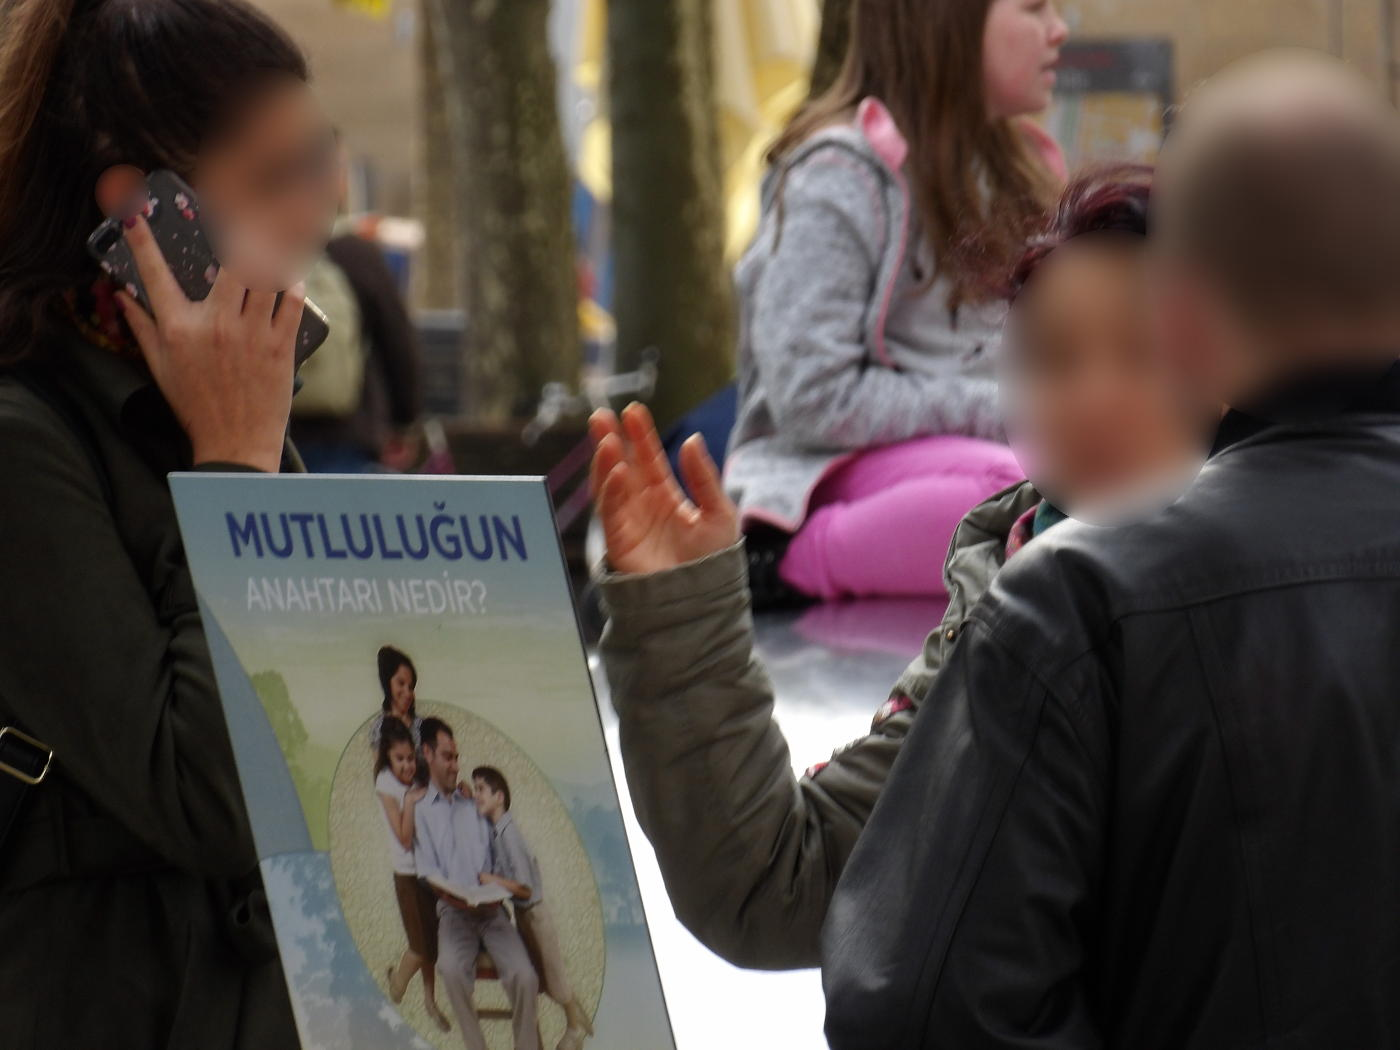 Heilbronn: Jehovah's Witnesses' major repair campaign